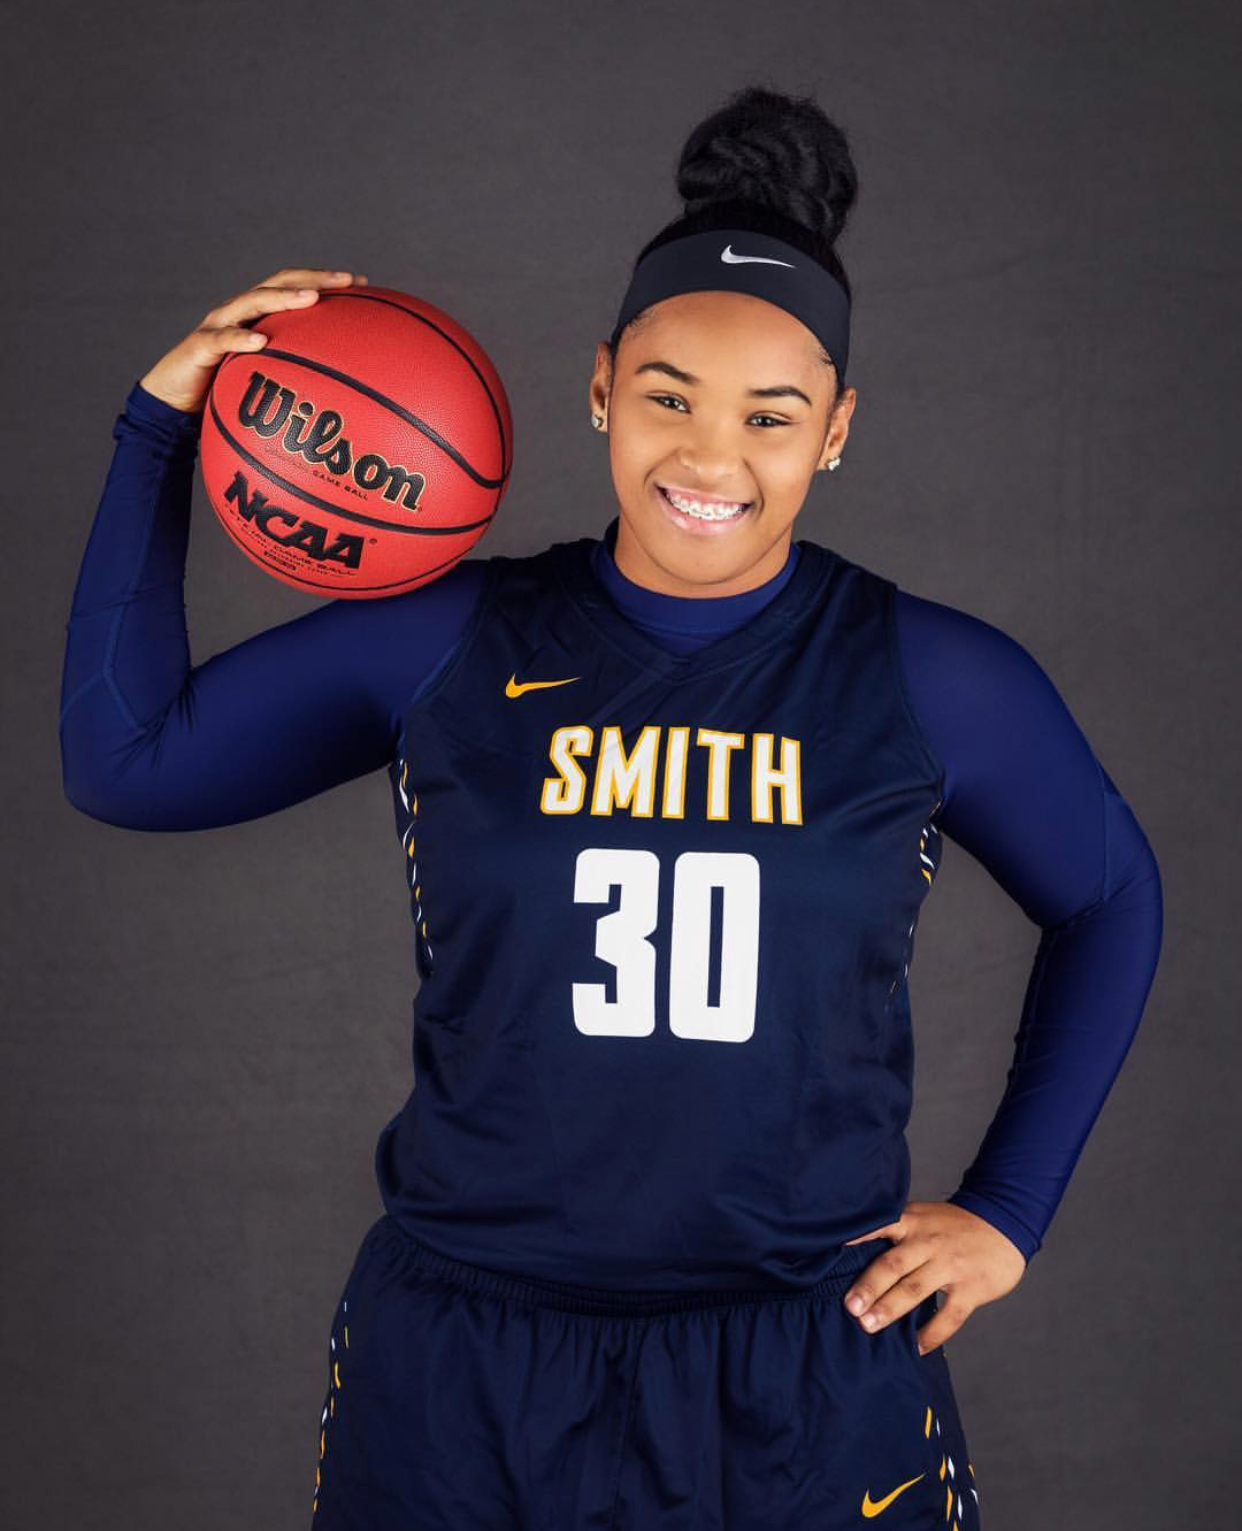 I know that you're involved in the Sports Committee for Inclusion and Diversity at Smith. Can you tell me about your experience with that and how that functioned to help you through your experience at Smith? -